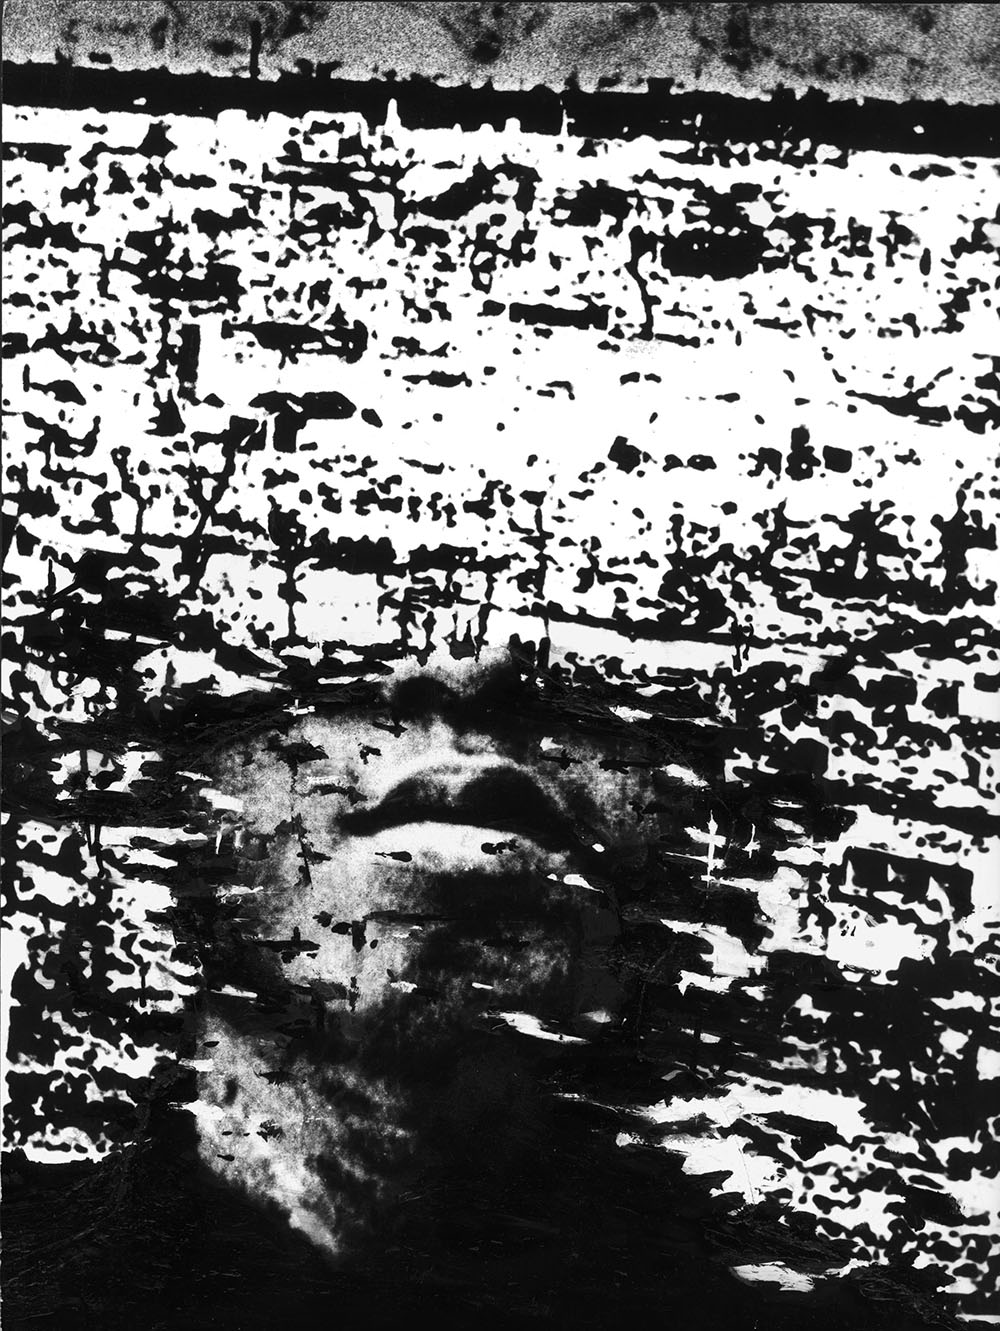 Hiroshima 6th August 1945 - PhotomontageGelatin silver prints, inkand gouashe on card1981First published:No Nuclear Weapons,CND/Pluto Press, 1981Catalogue: PK/31